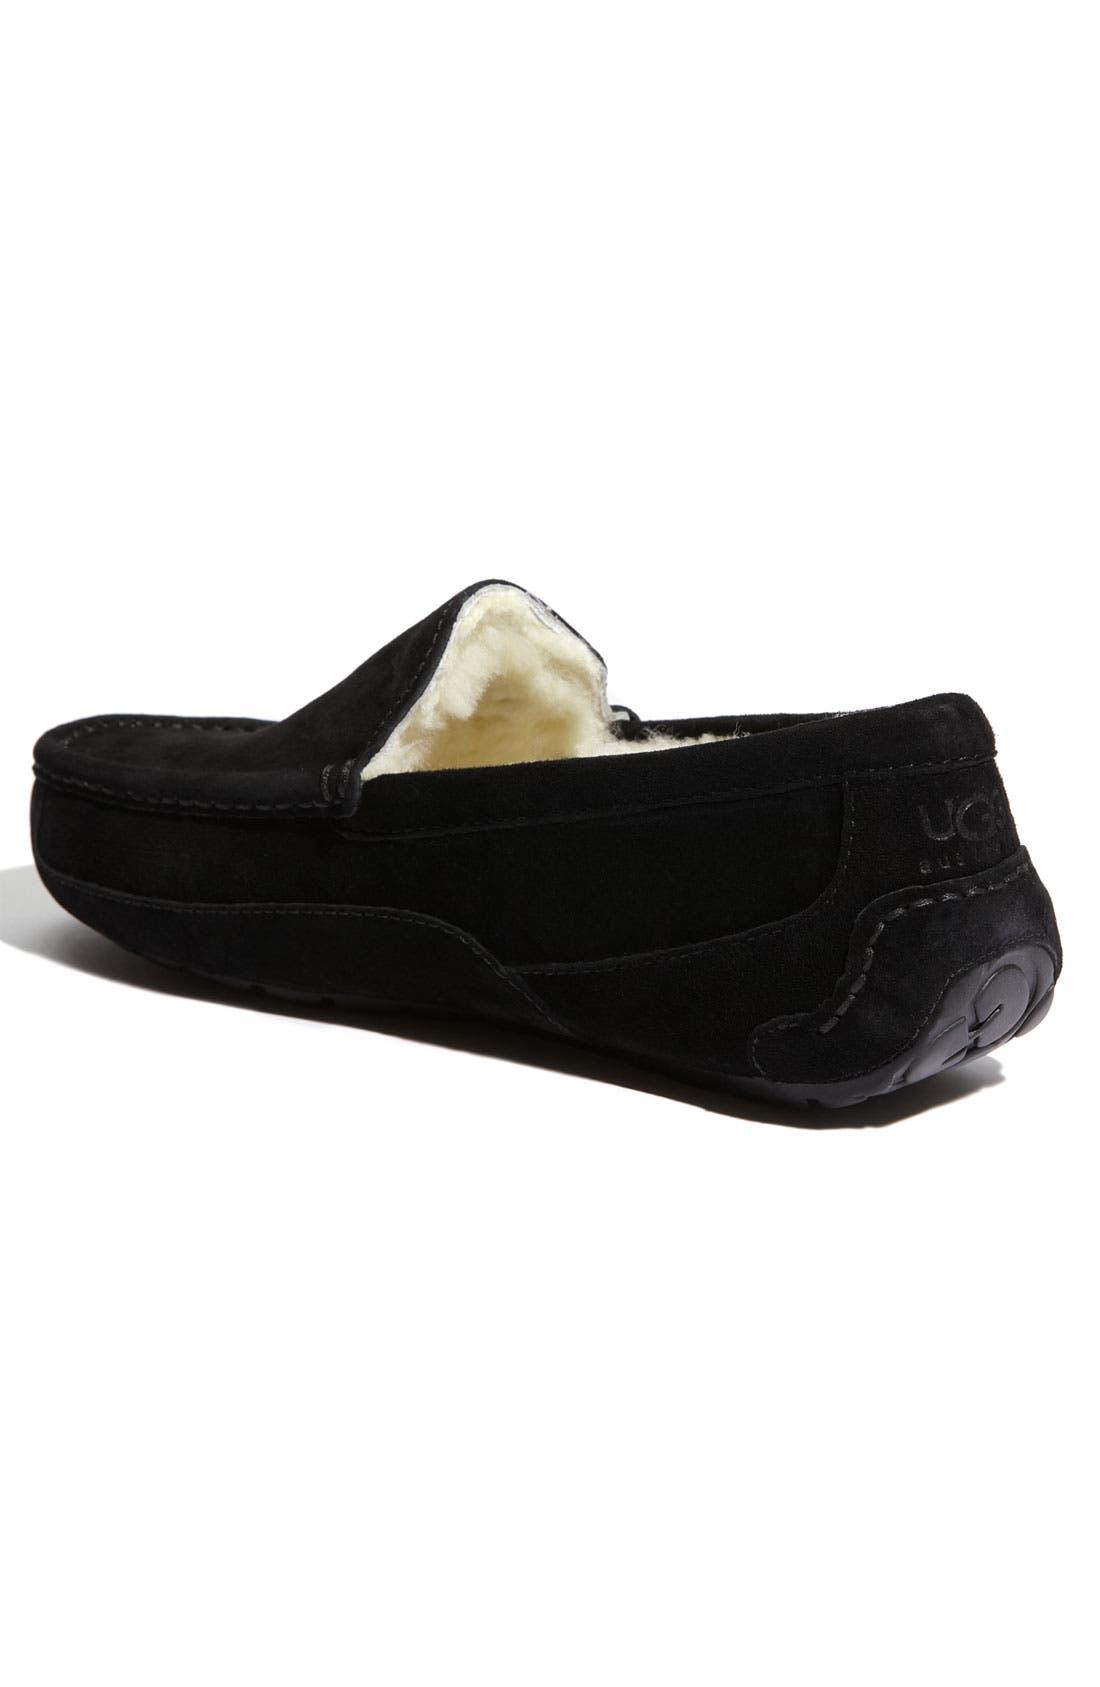 Ascot Suede Slipper,                             Alternate thumbnail 5, color,                             BLACK SUEDE